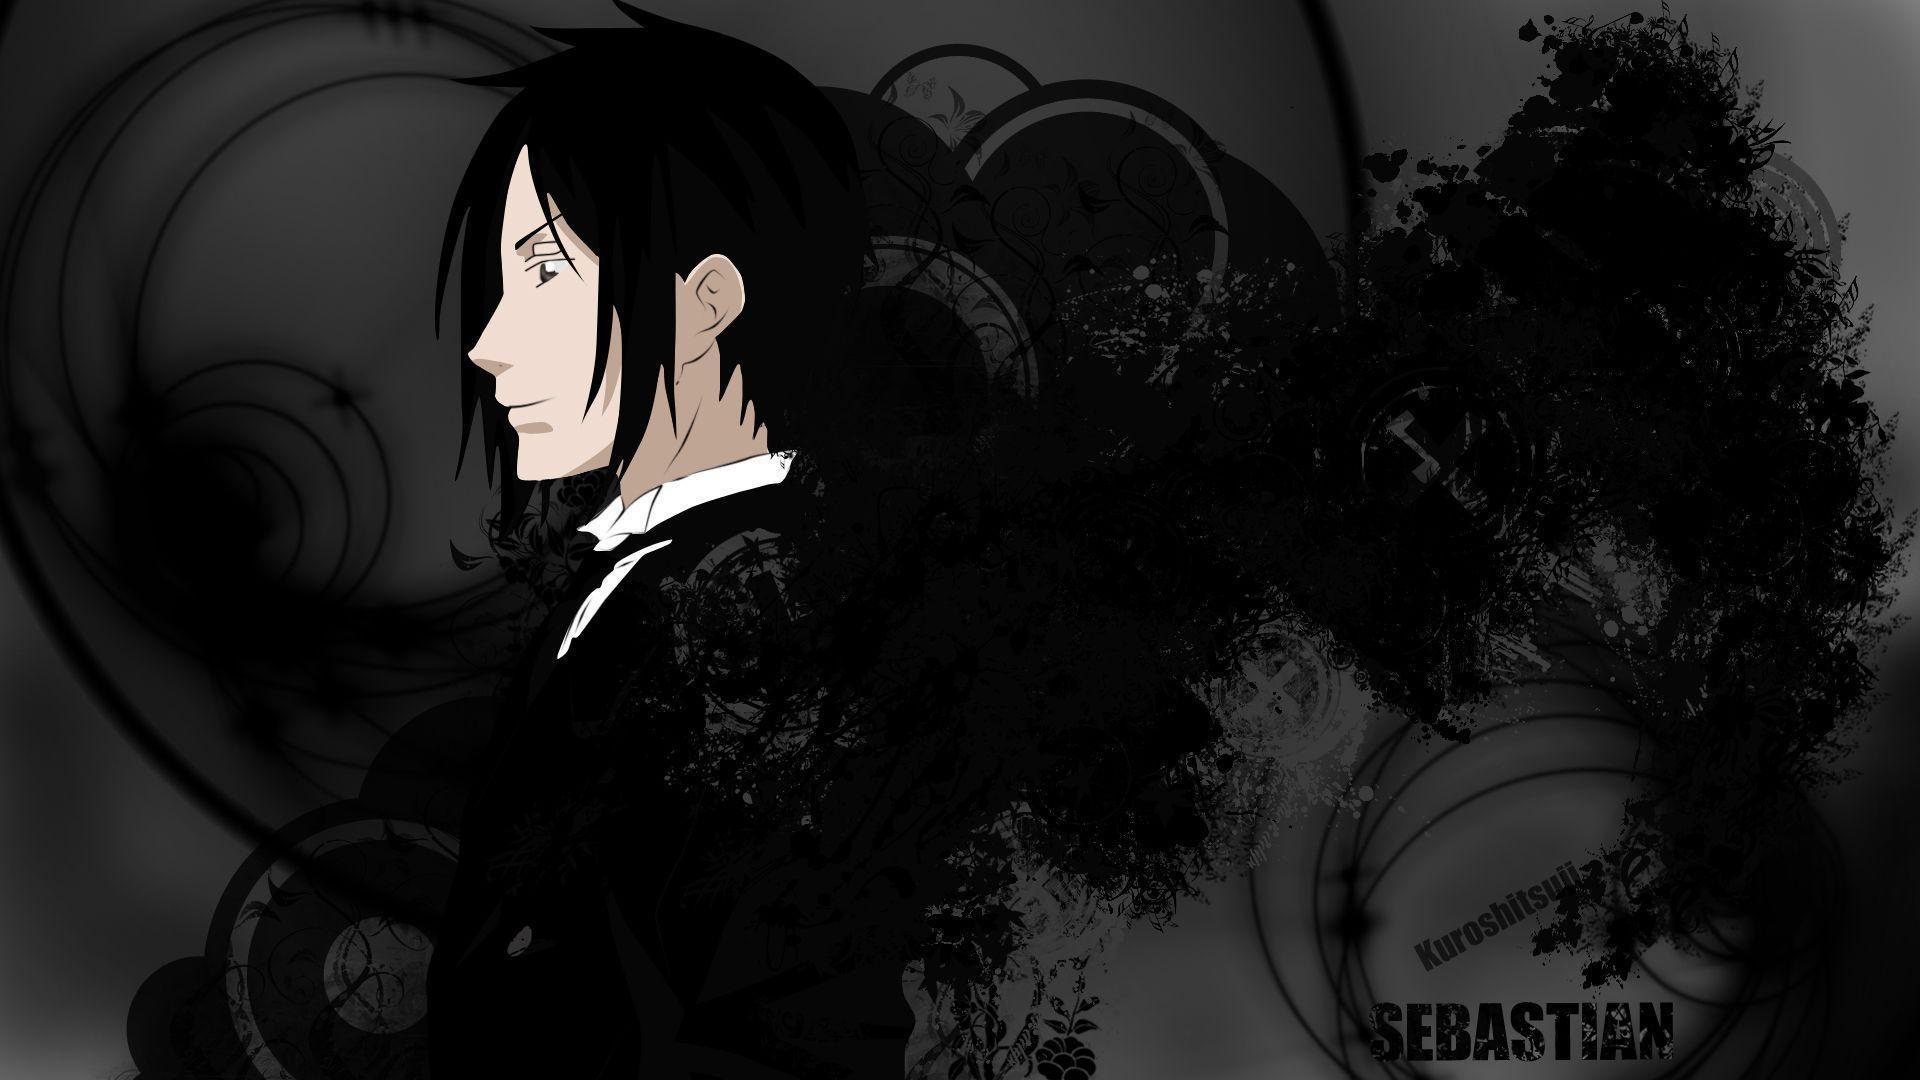 Black Butler Sebastian Background - Viewing Gallery